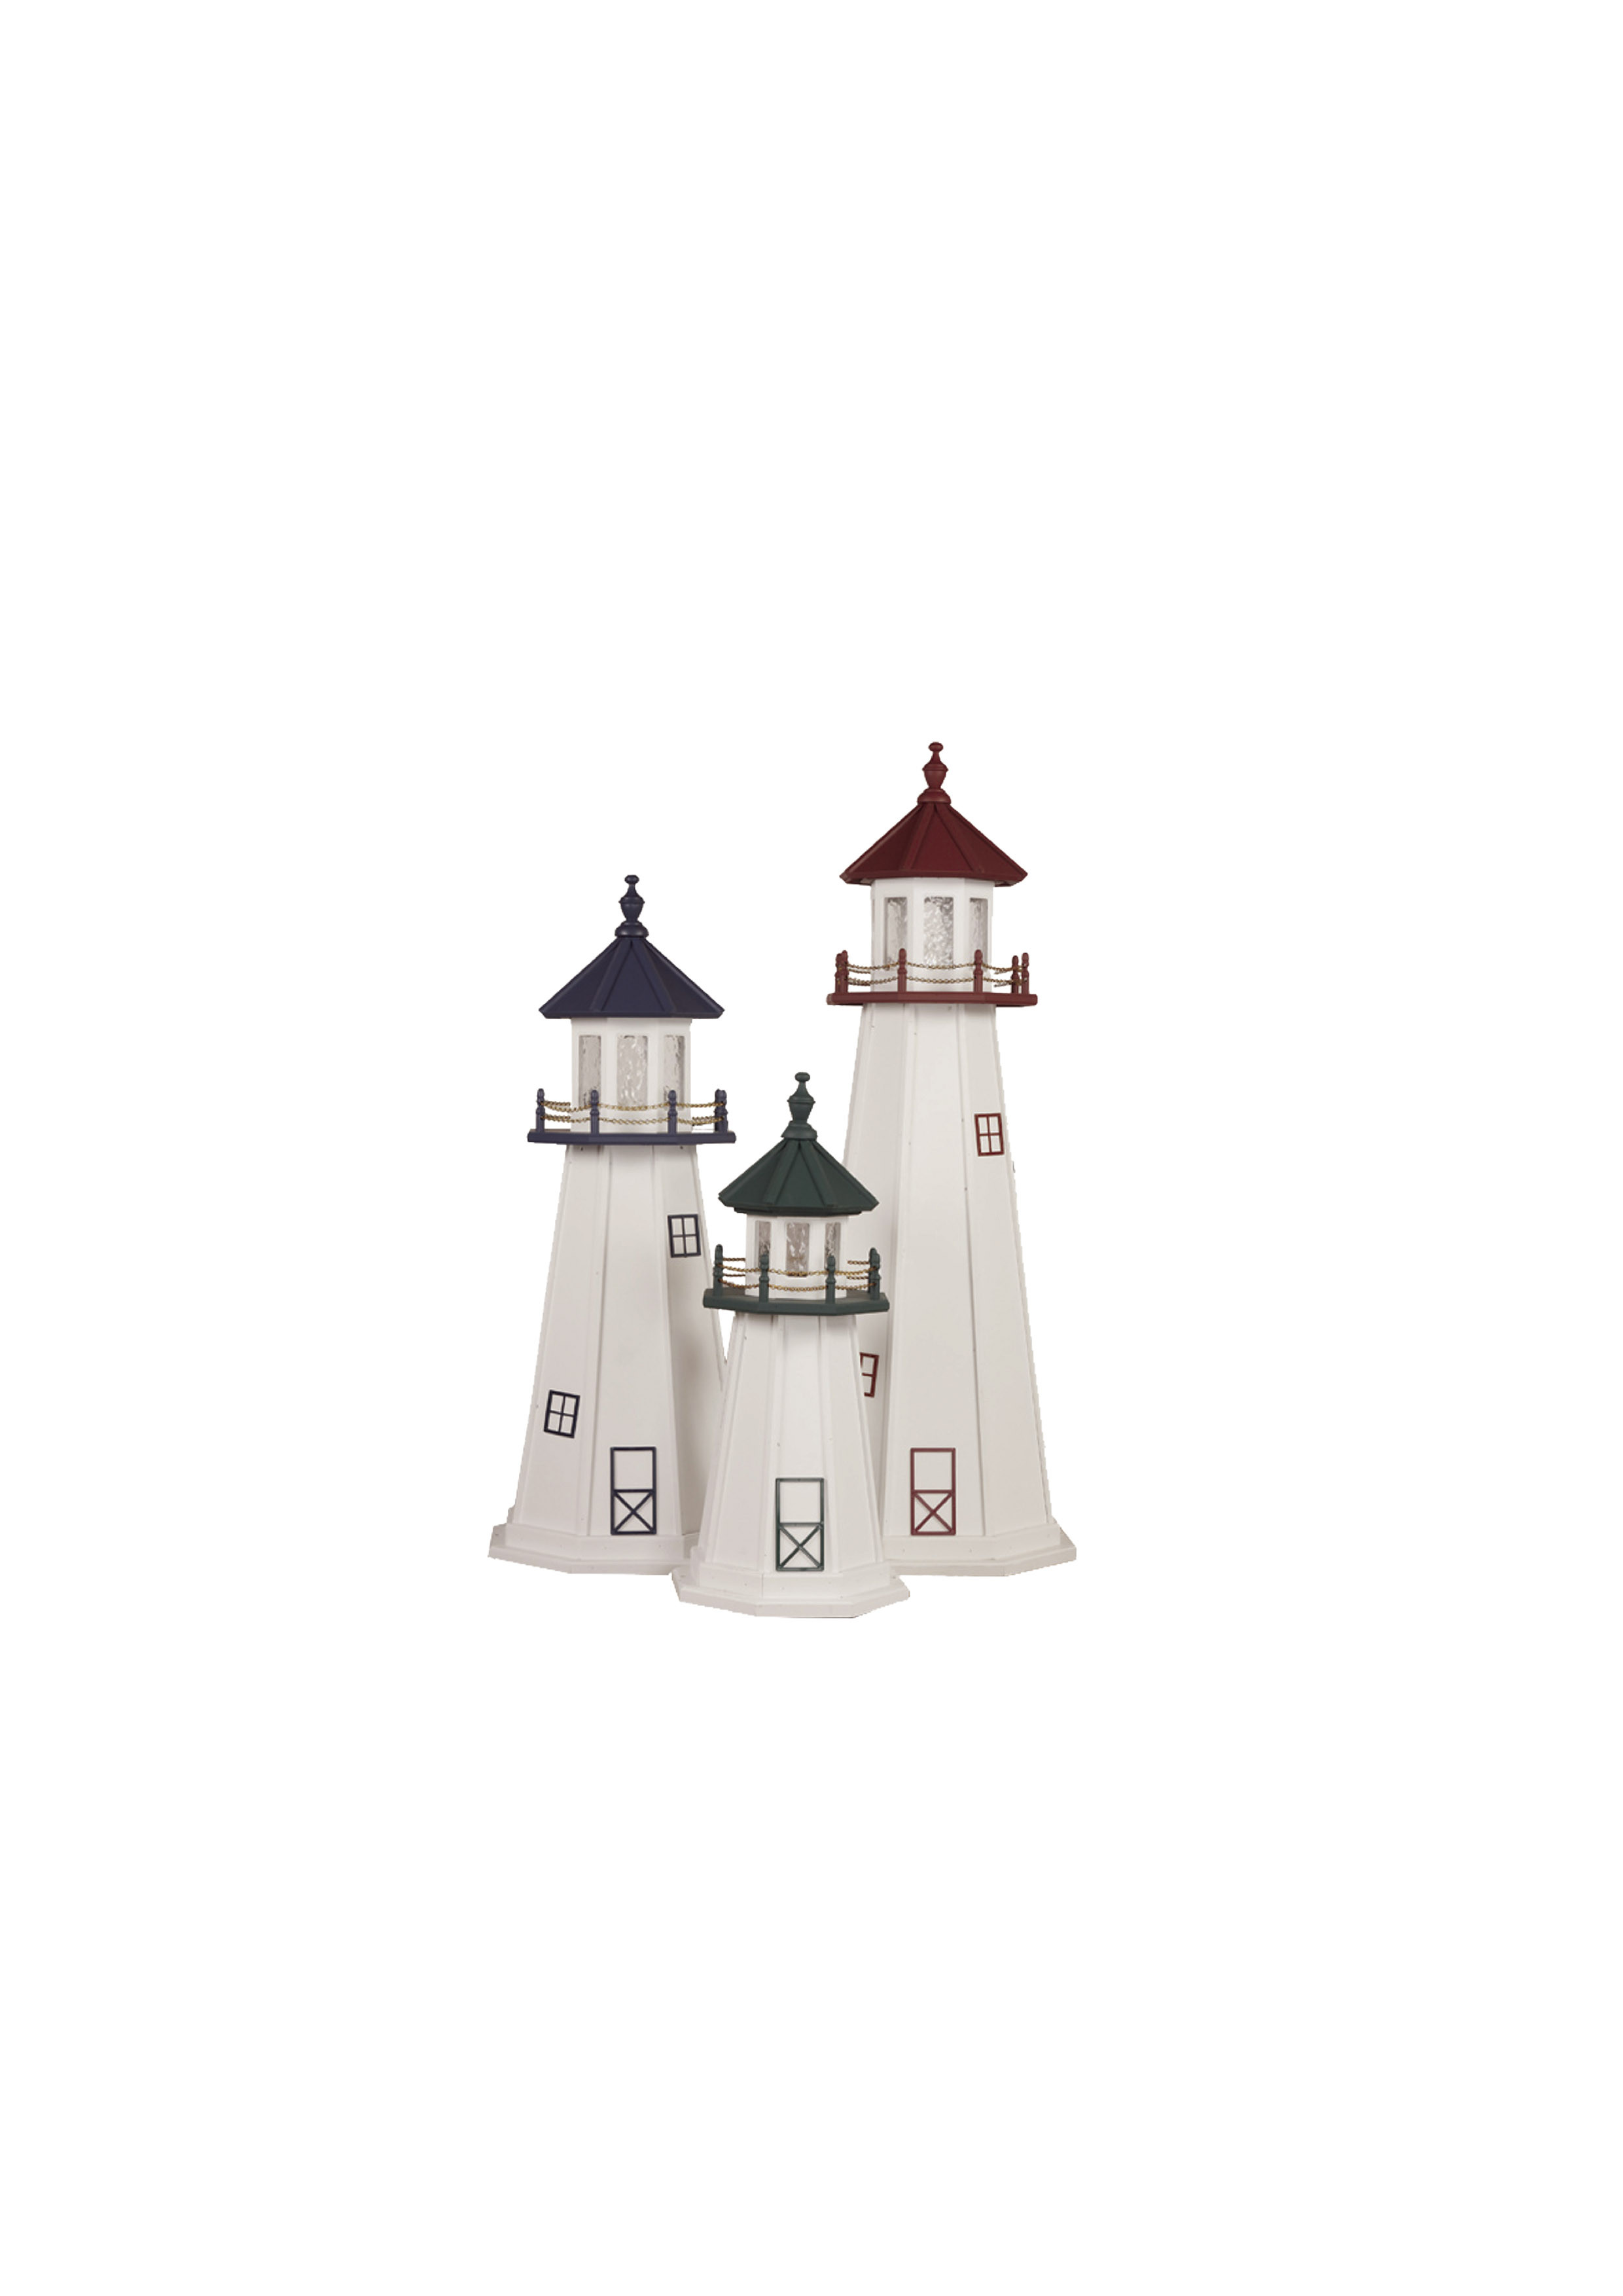 Amish Crafted Wood Garden Lighthouse - Cape Cod & Cape Florida Group